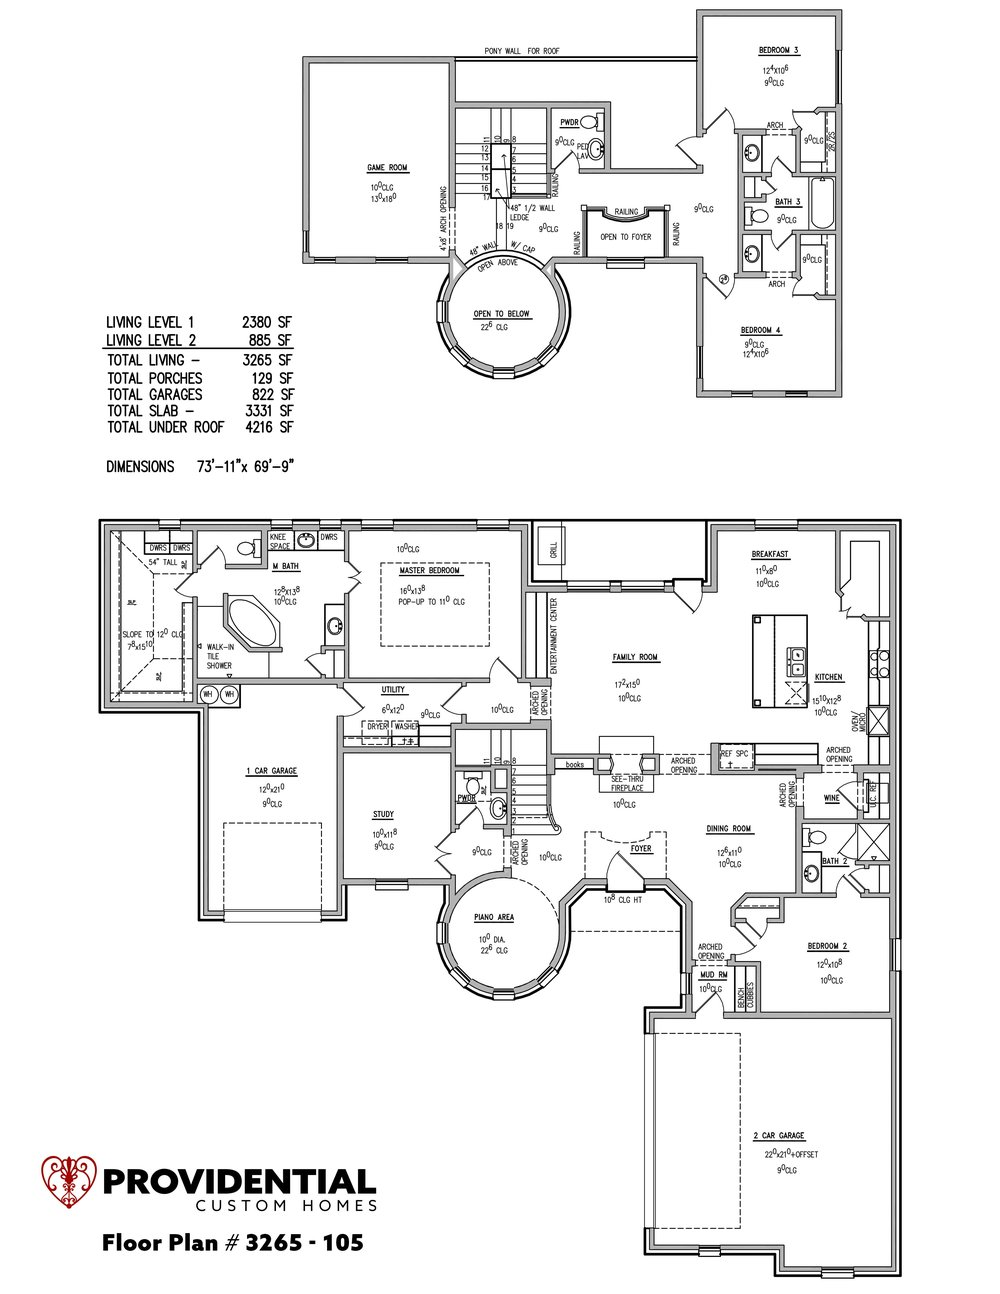 The FLOOR PLAN #3265 - 105.jpg